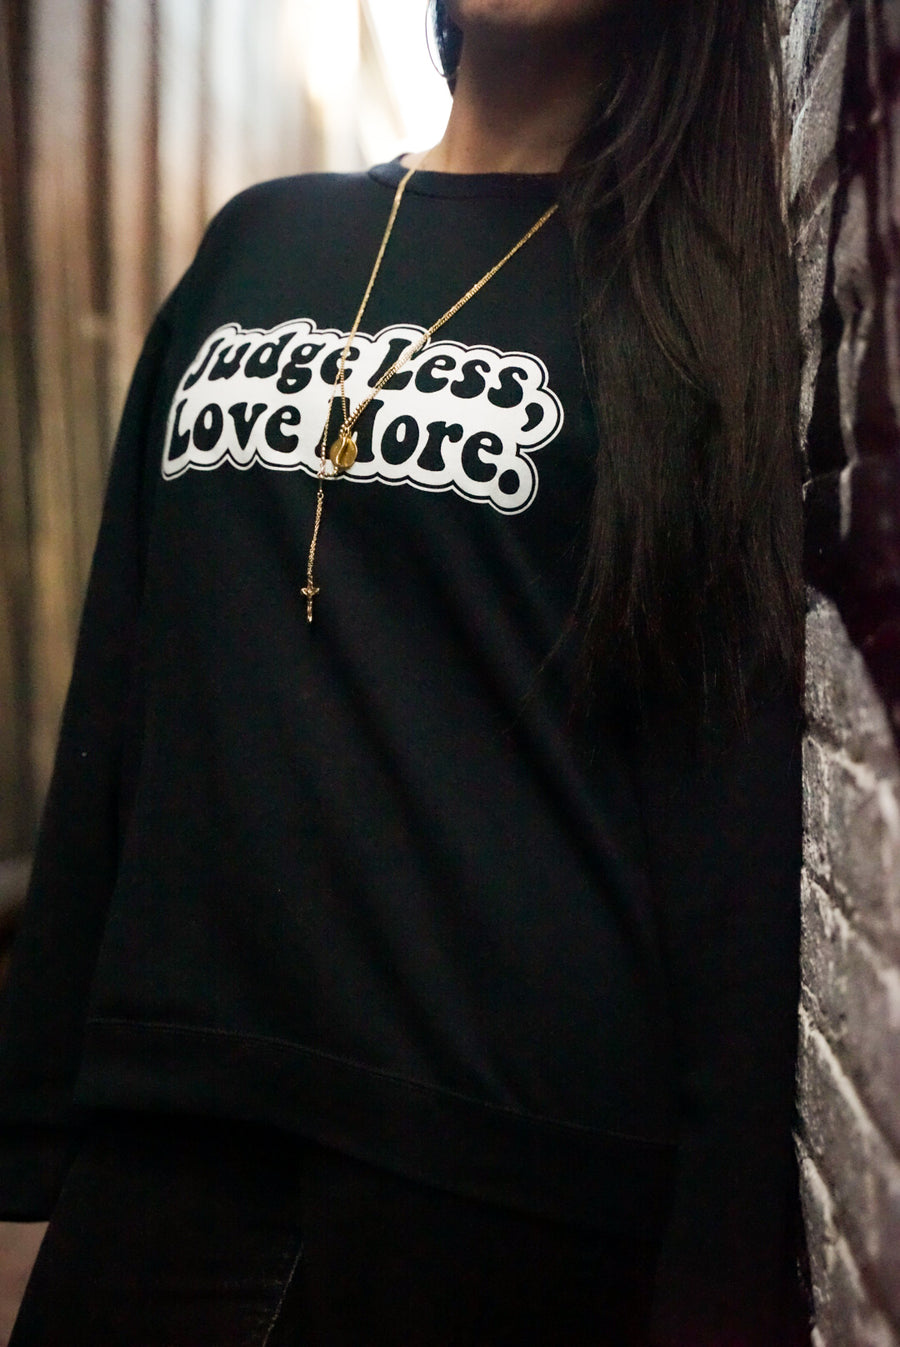 Judge Less, Love More. Unisex Sweater